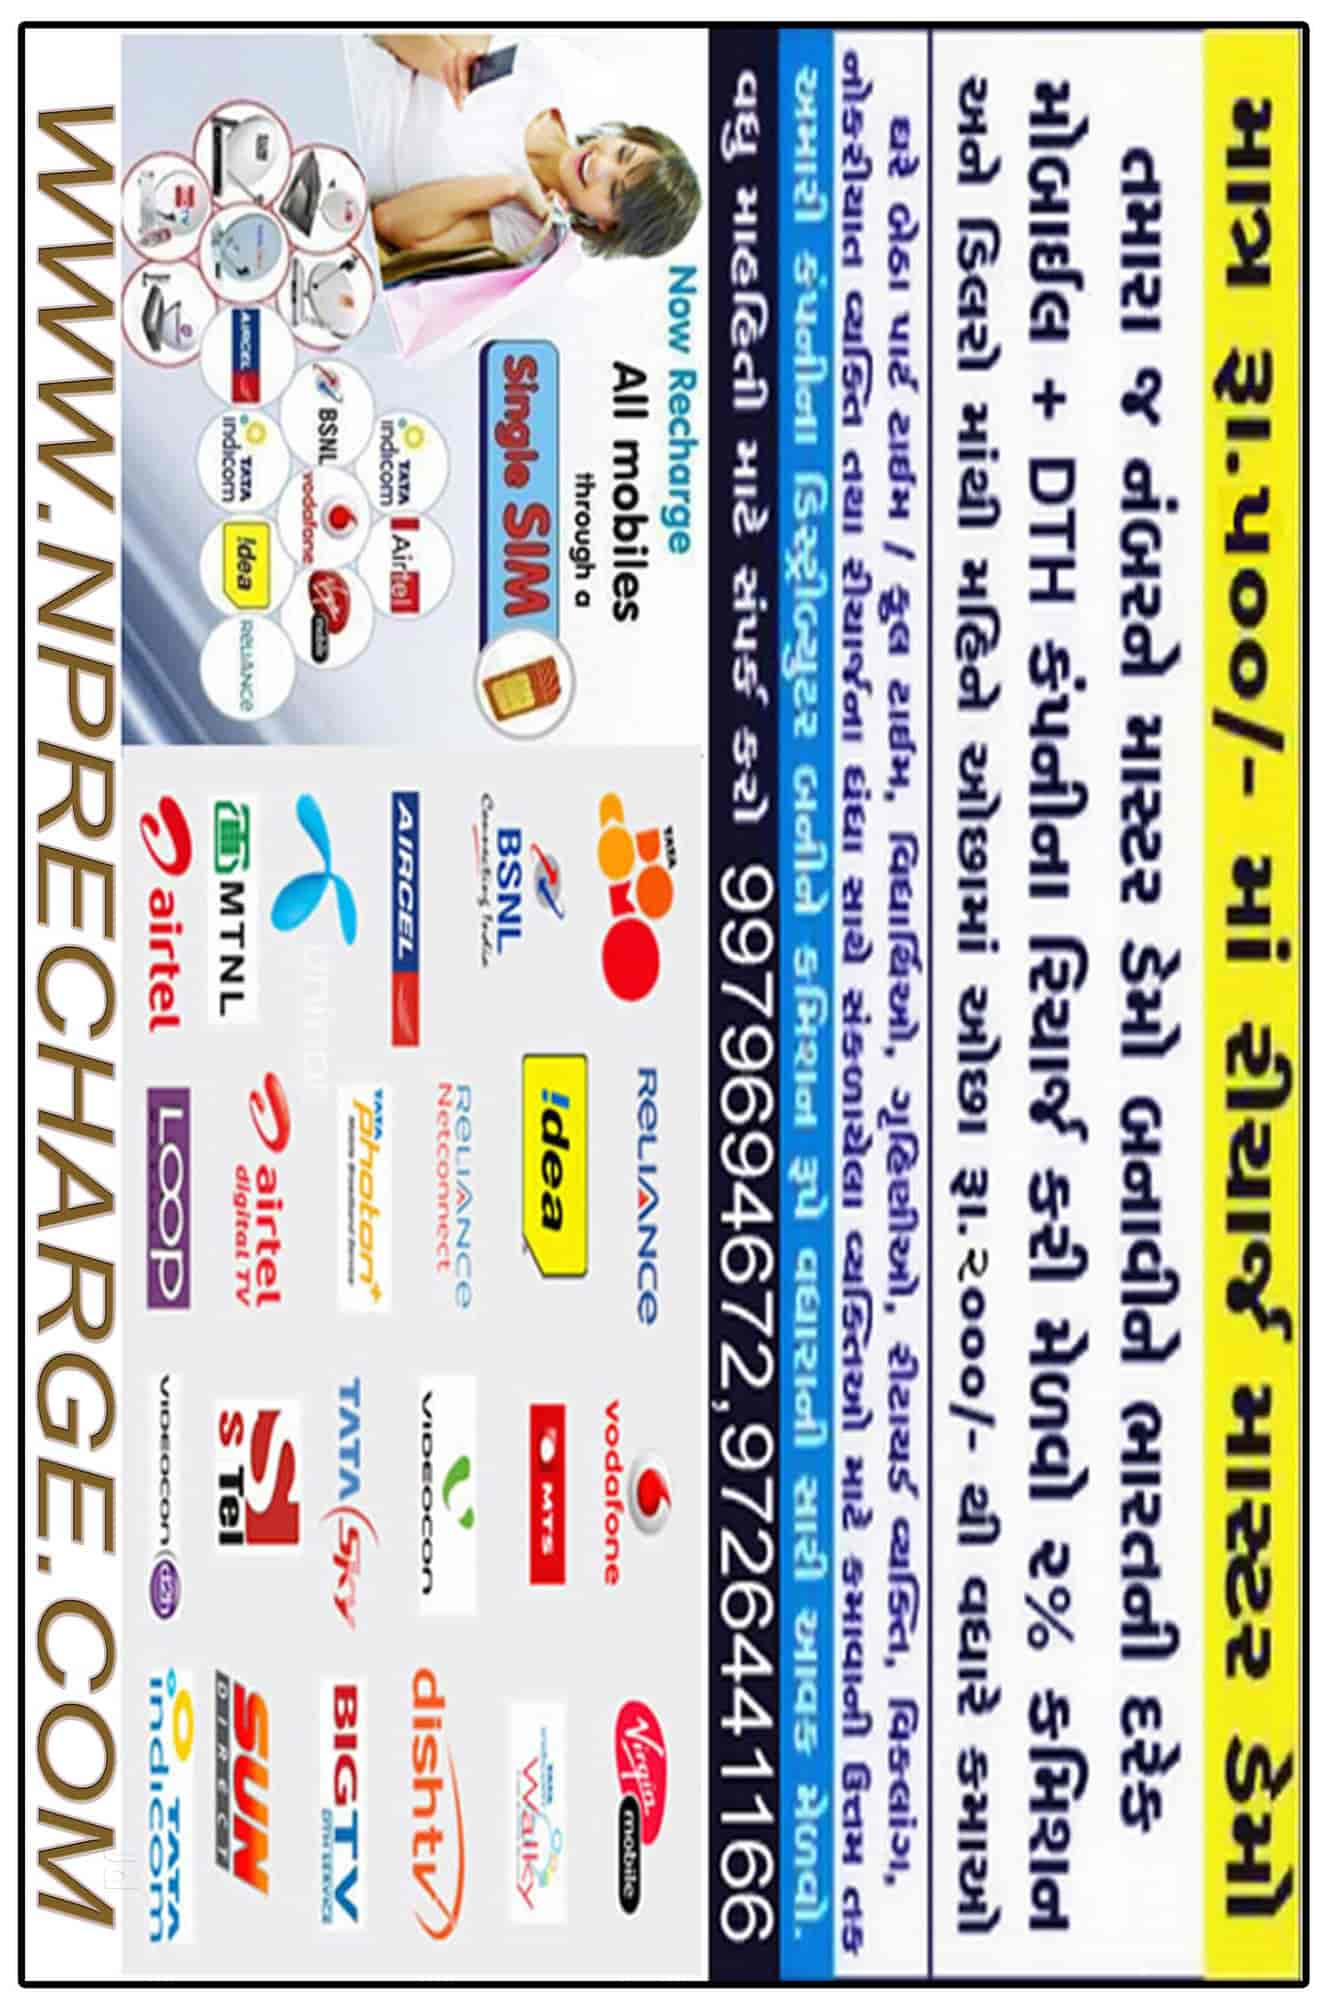 NP Recharge Solution India Pvt Ltd Photos, Lunawada, Panchmahal